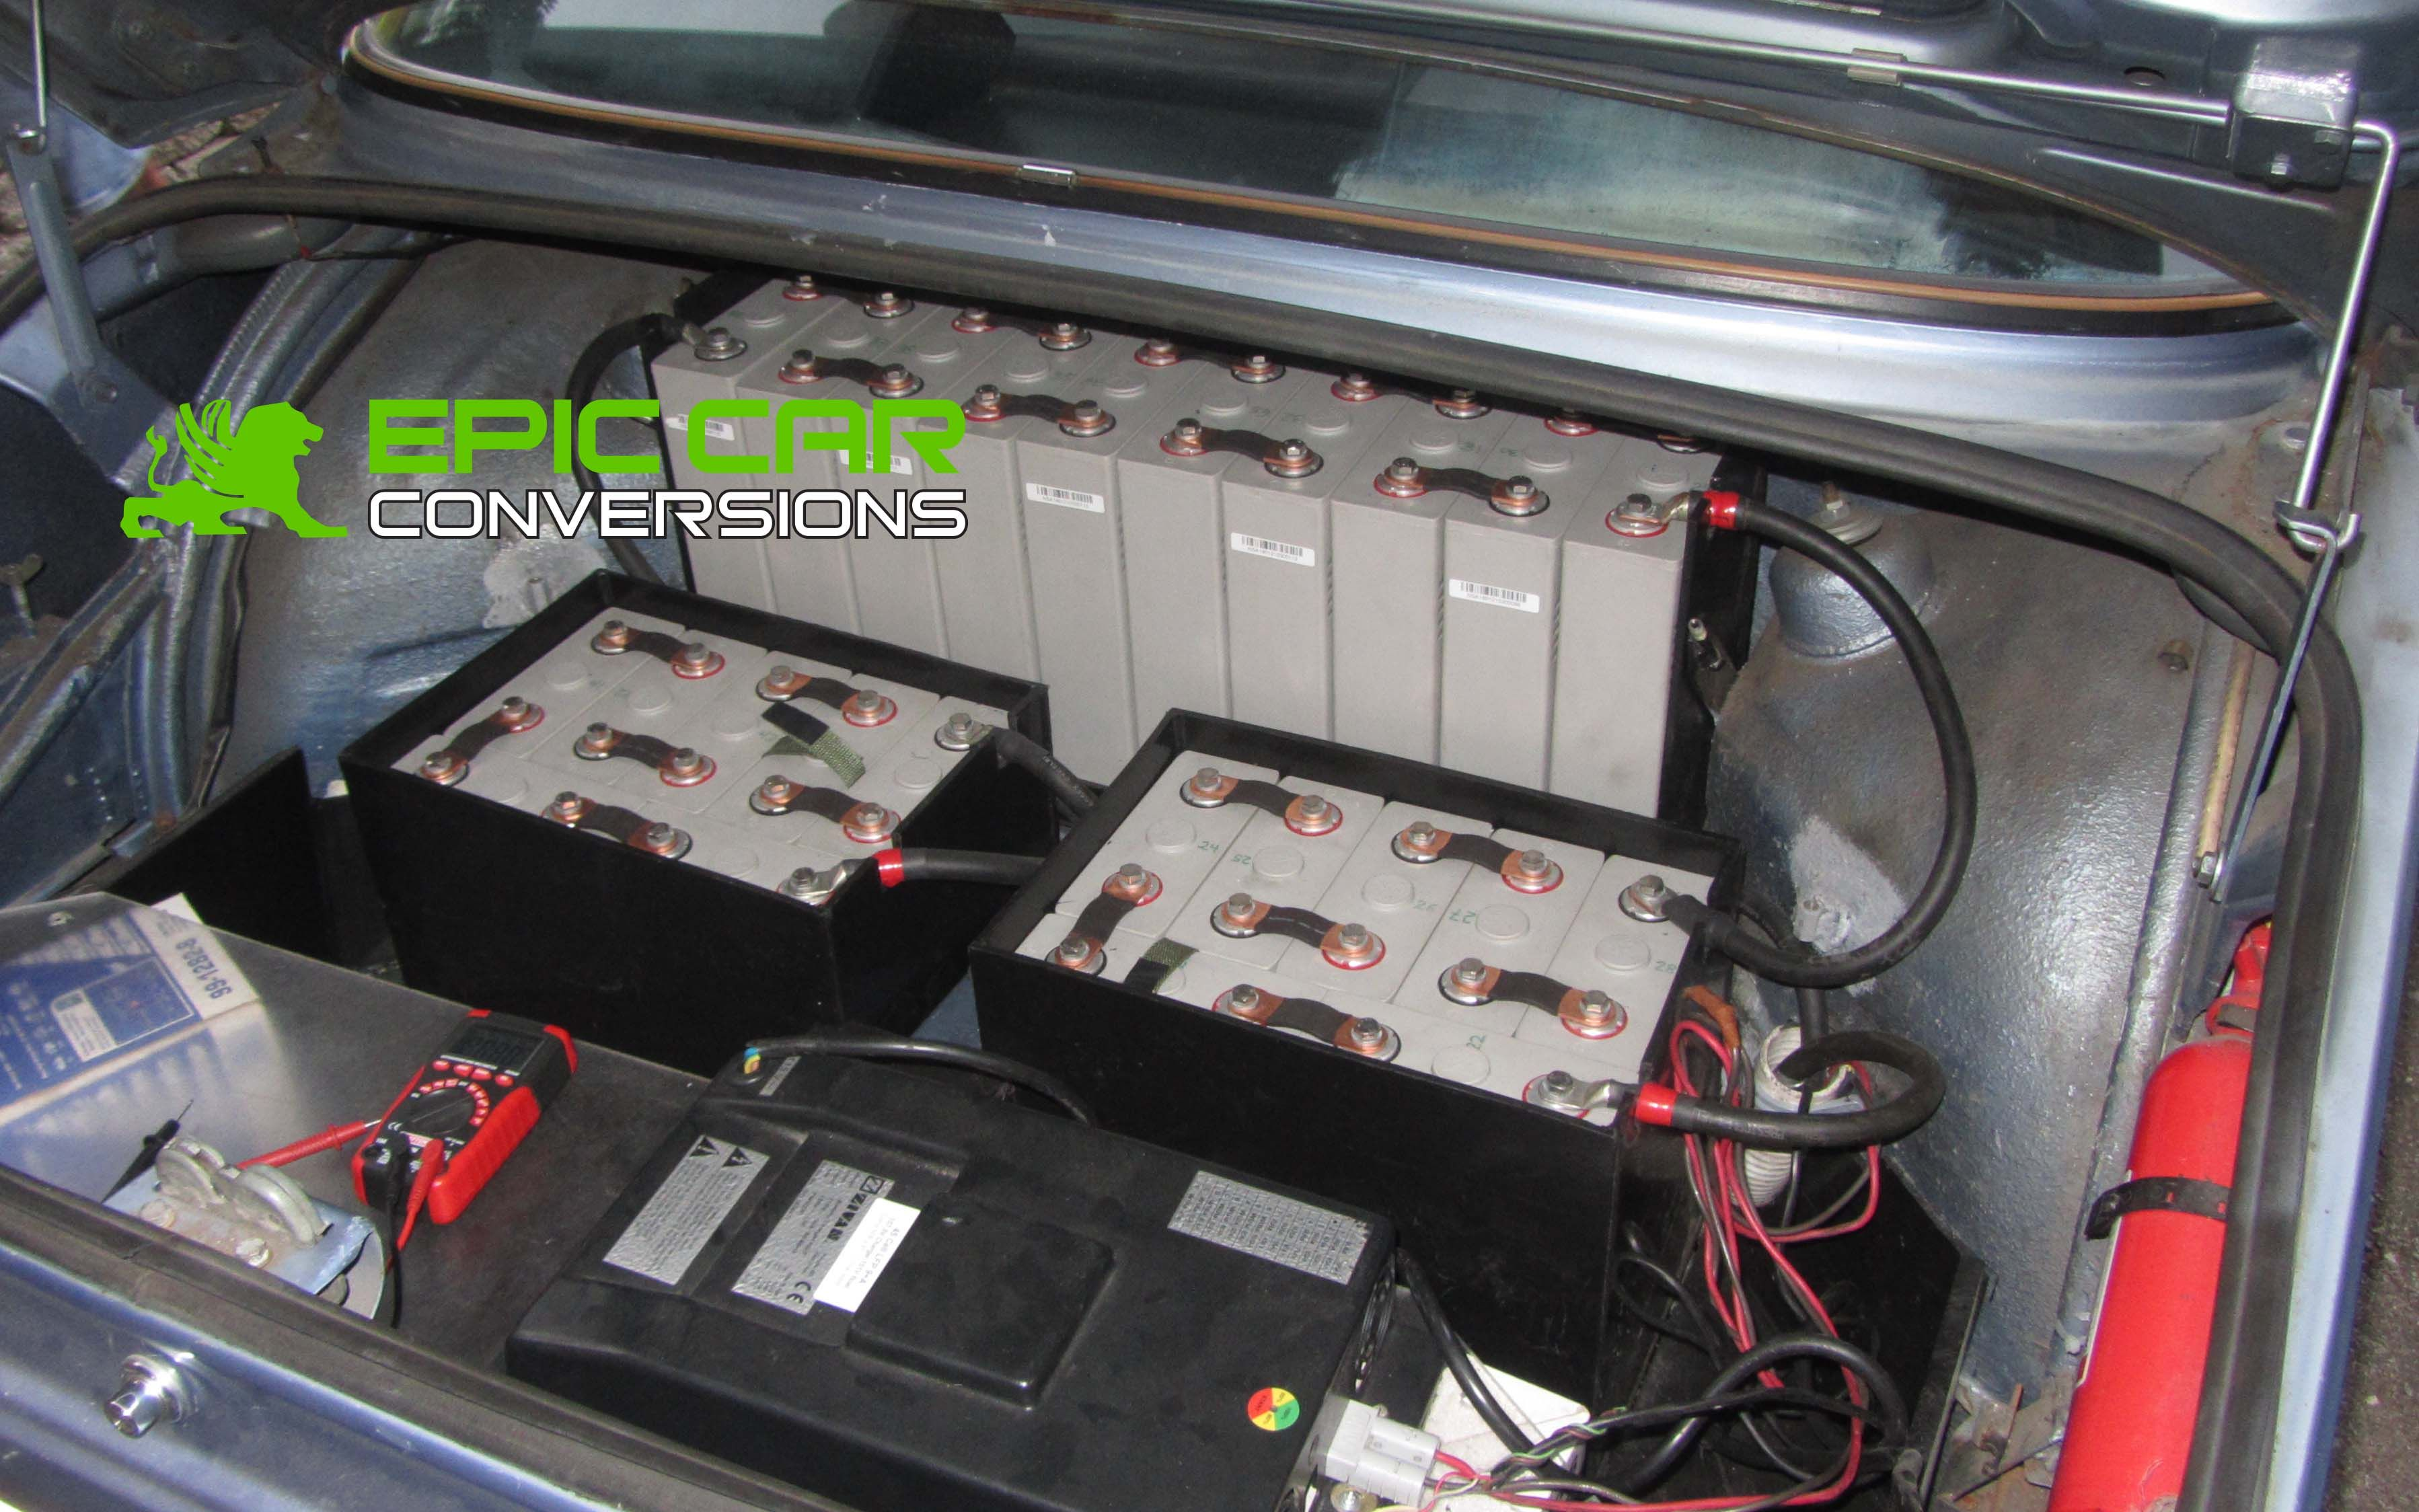 bmw 2002 electric car conversion (ev electric vehicle) batteries